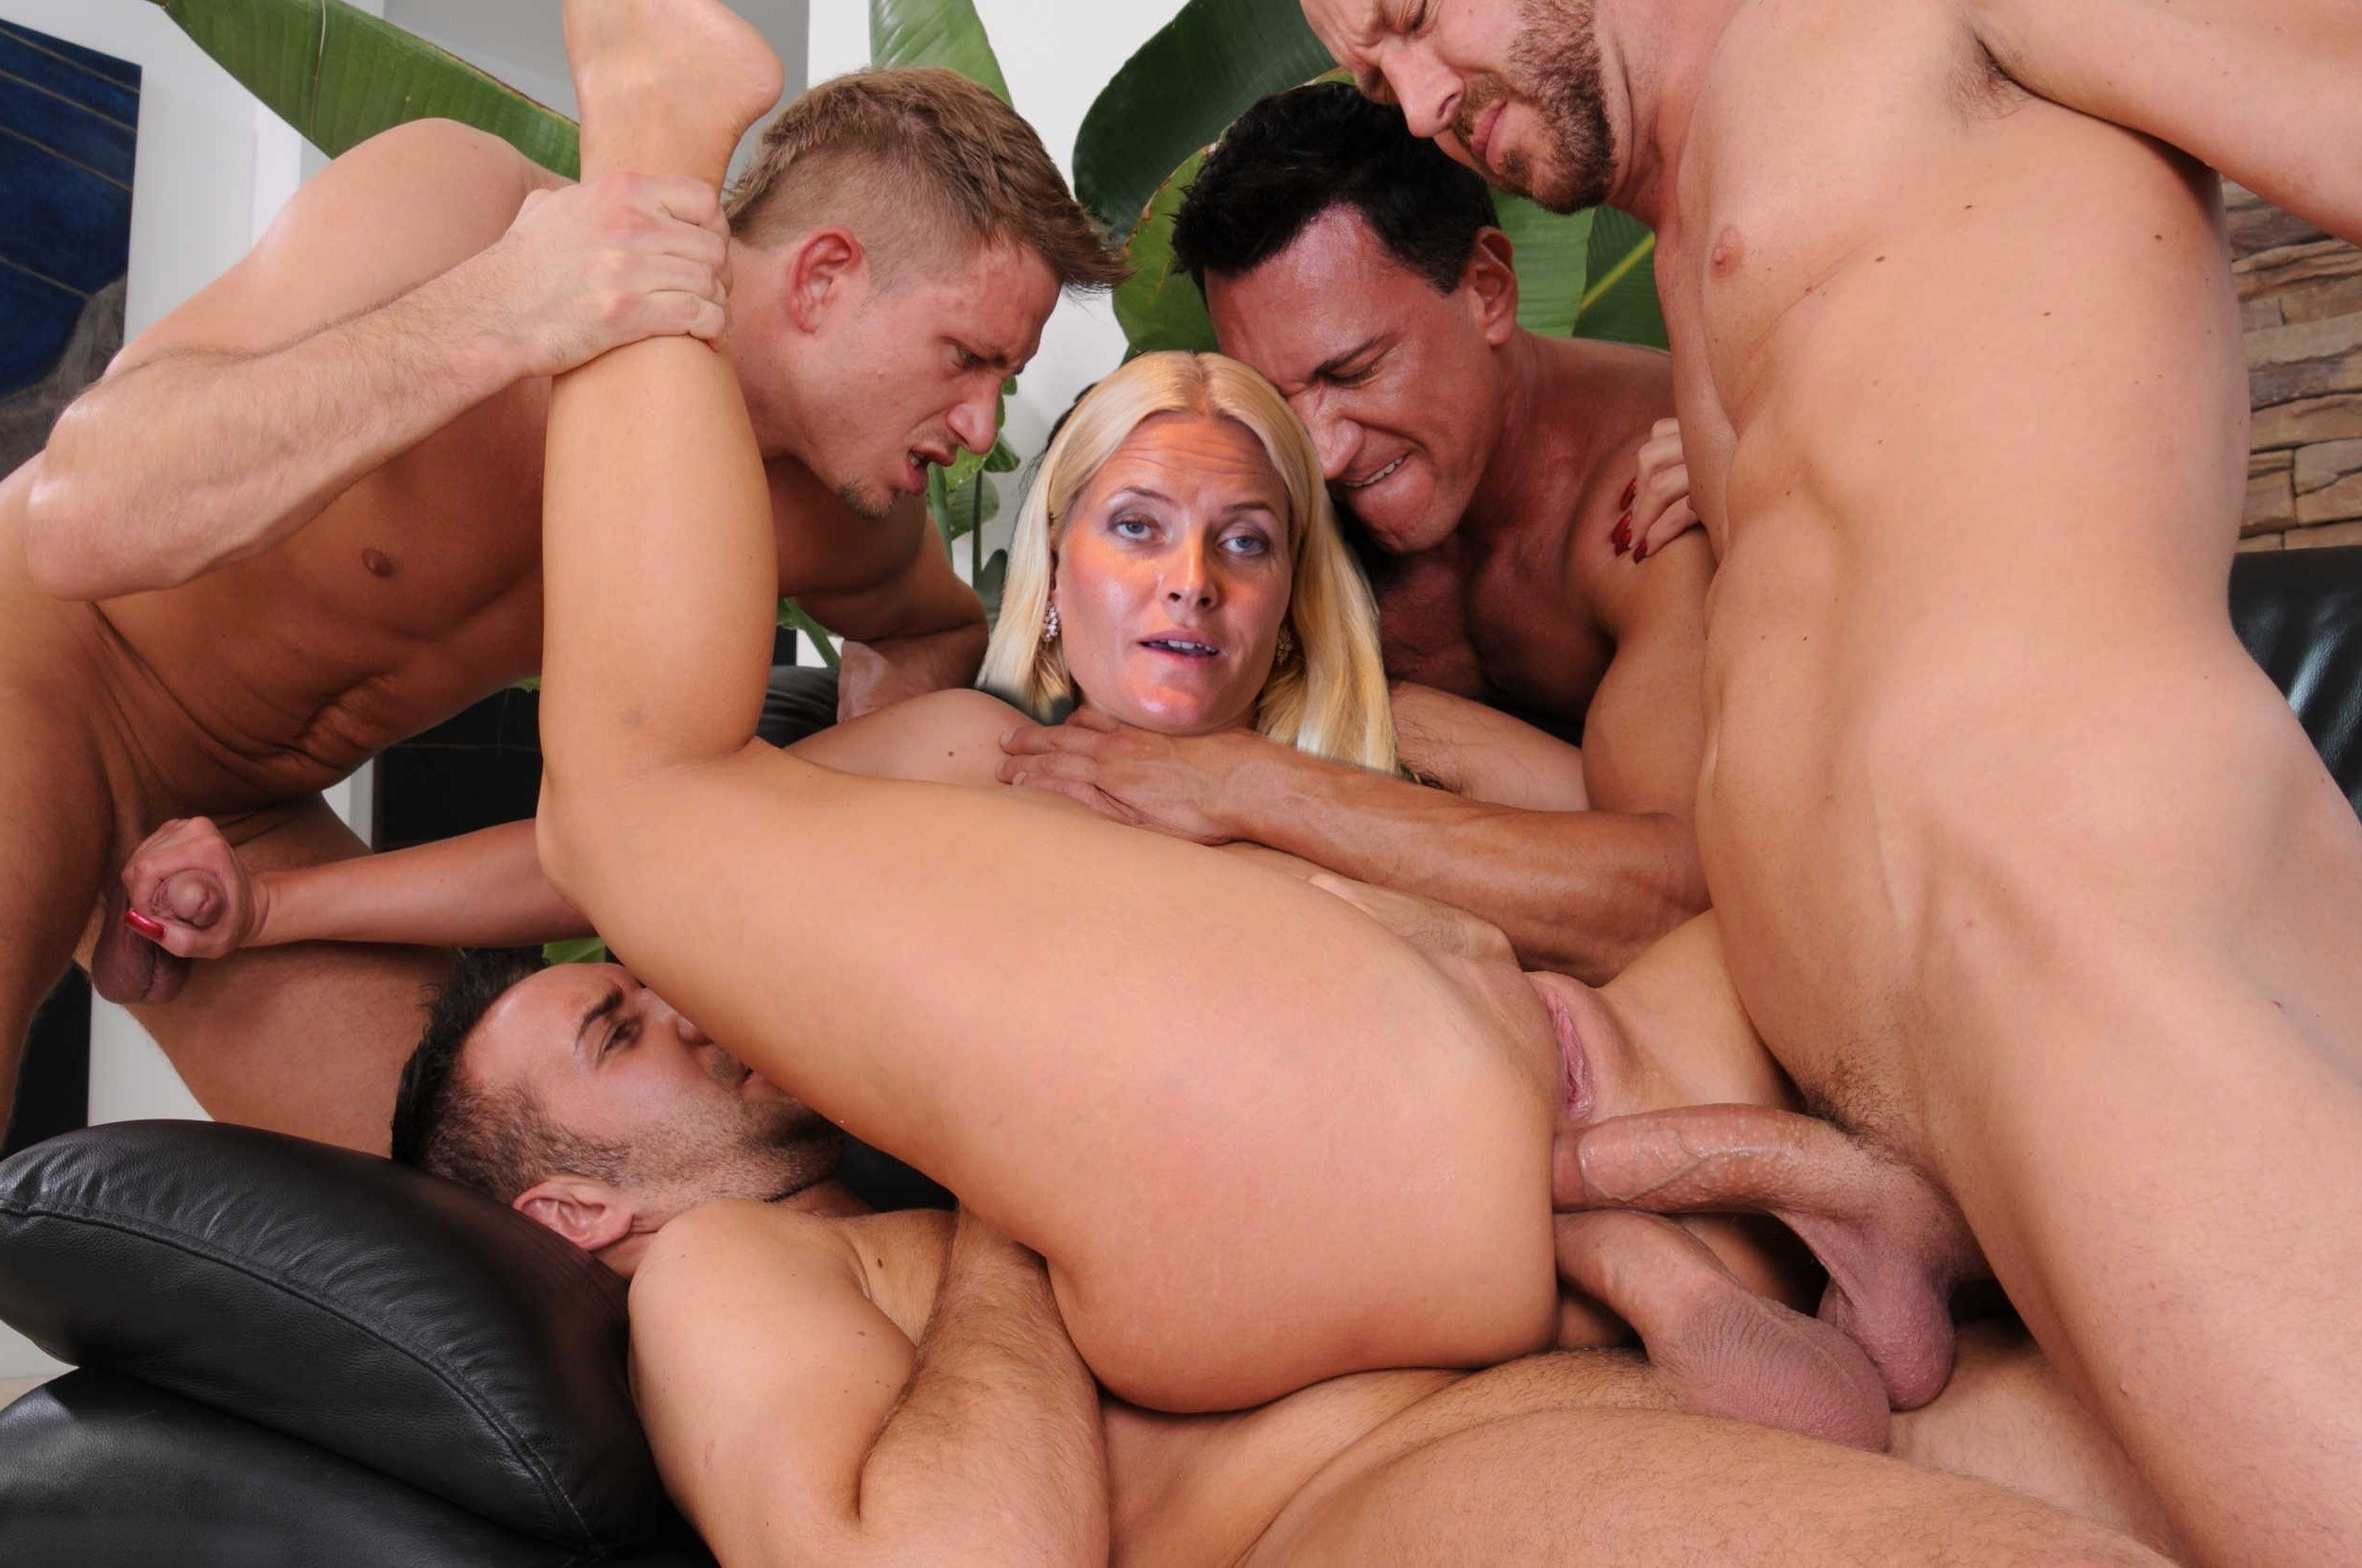 Mary anne clips u free group sex fuck pics